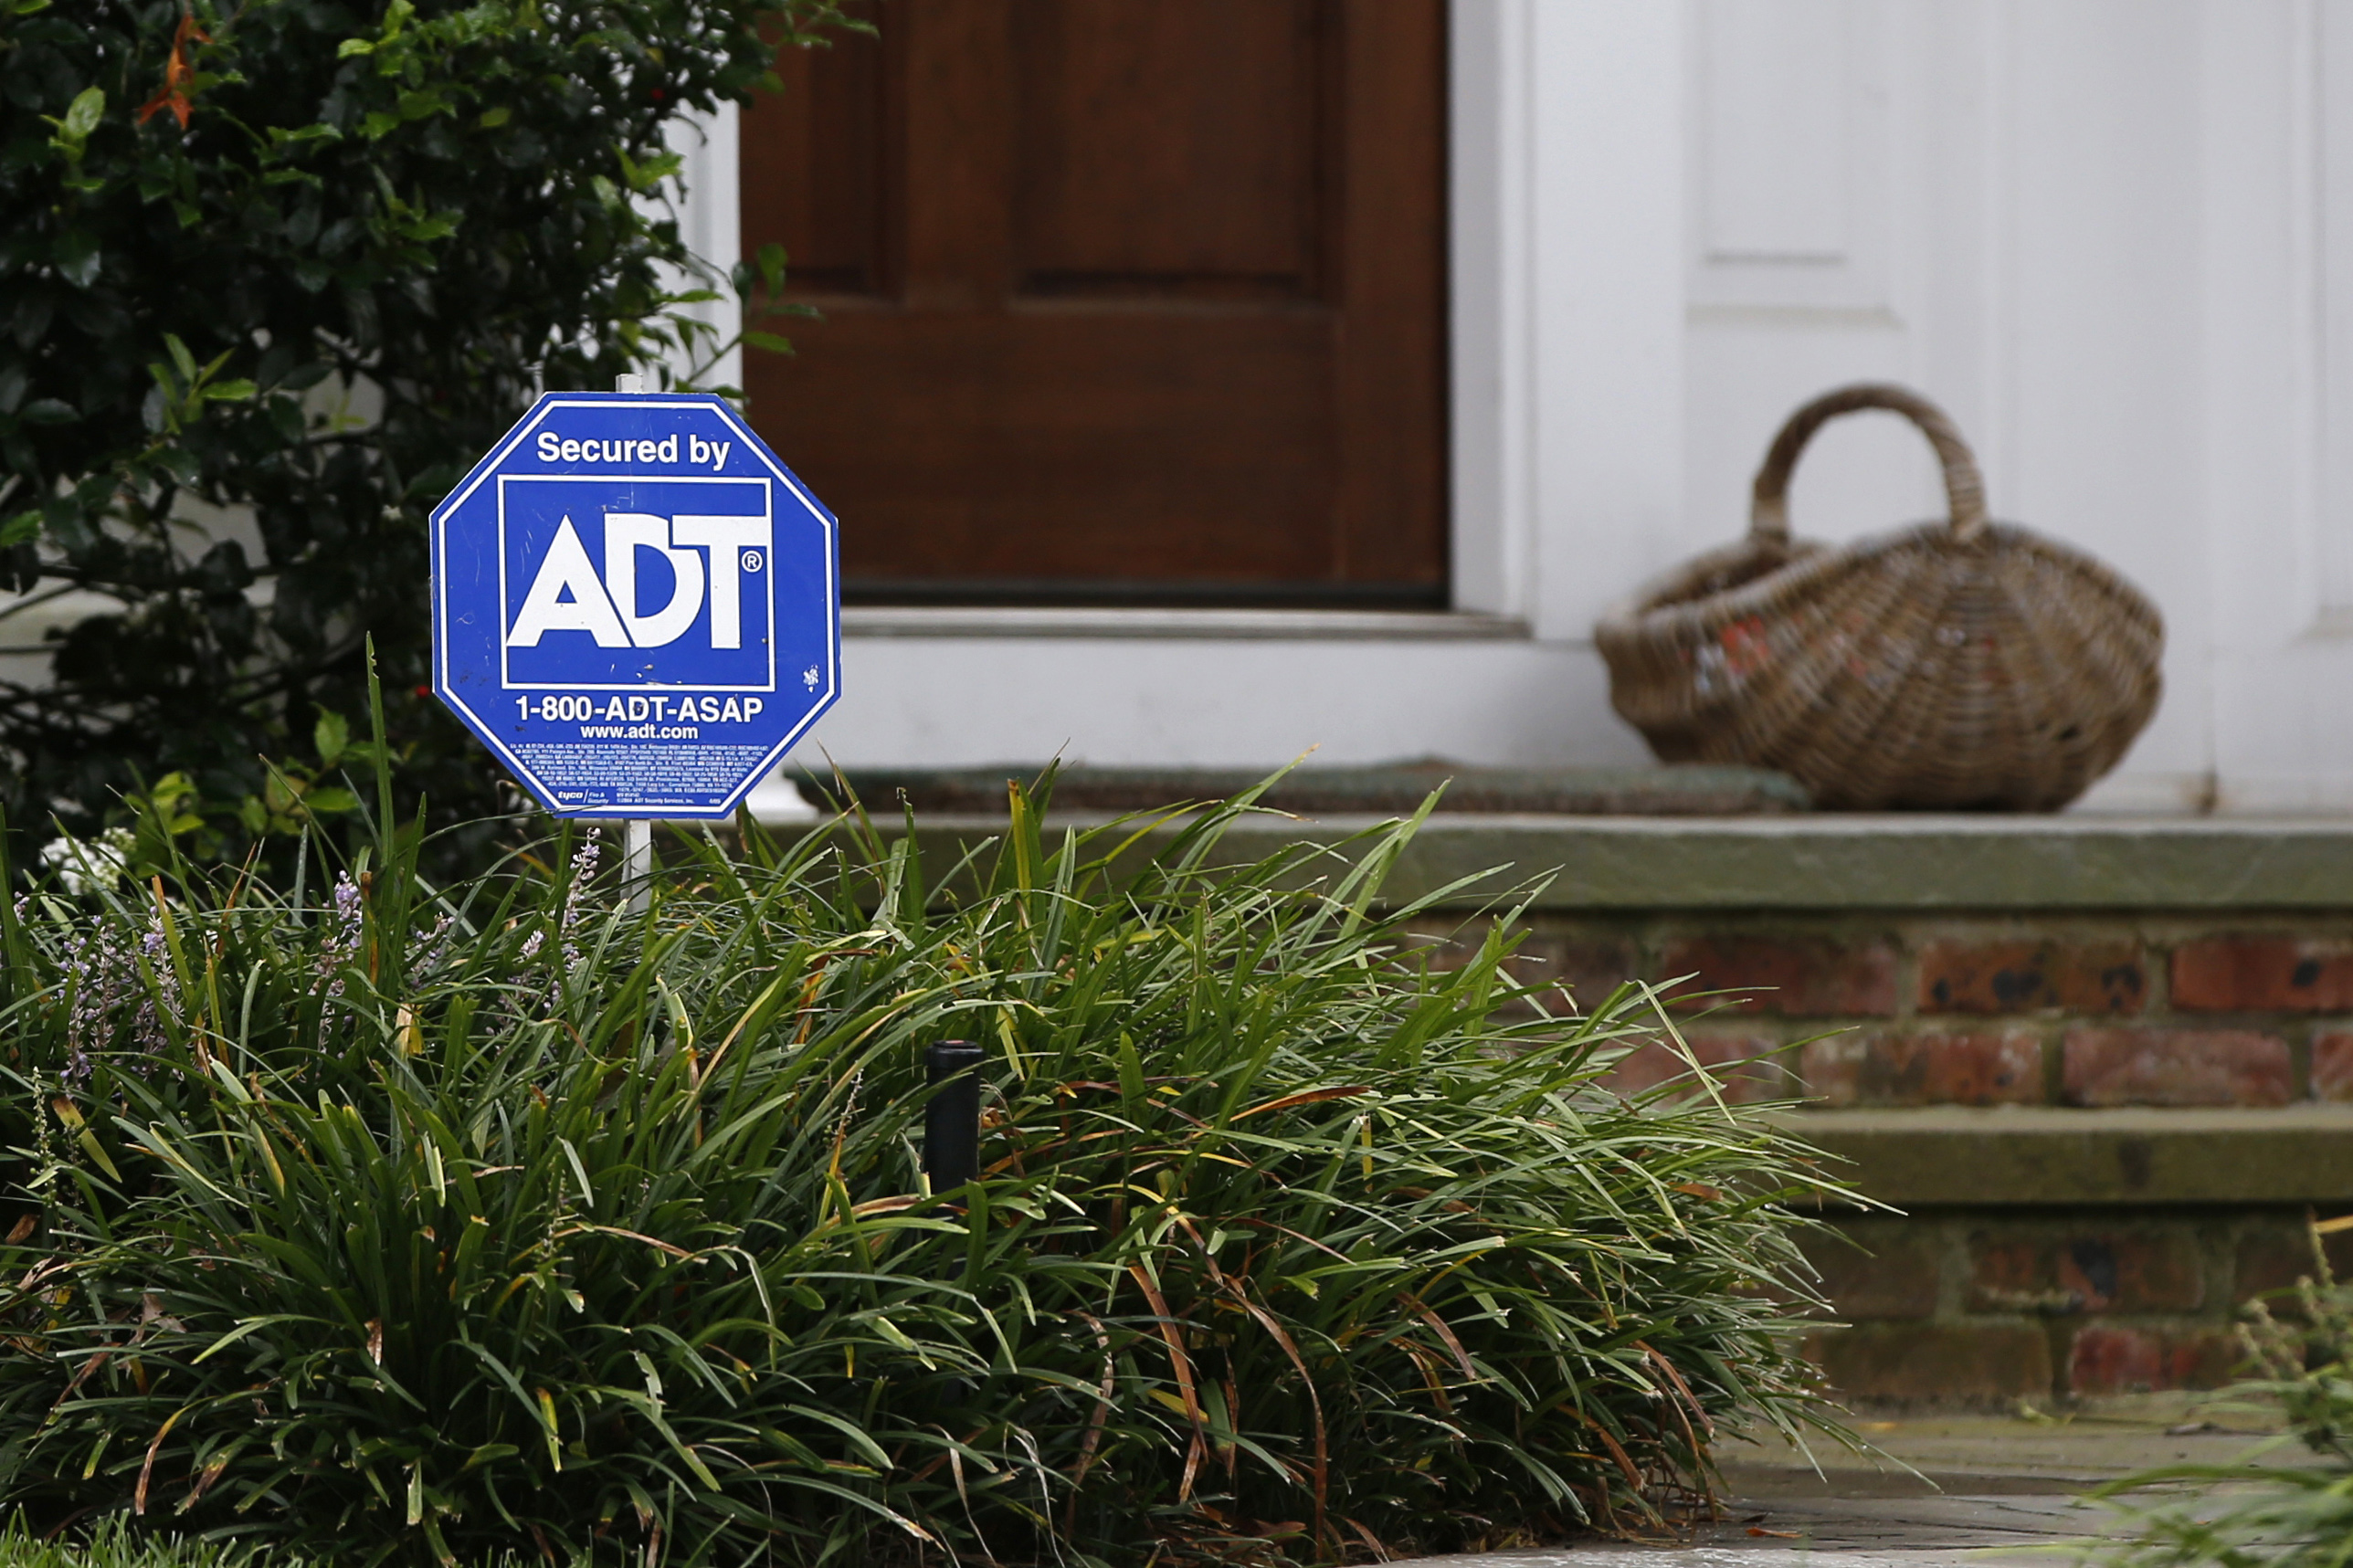 A security sign for ADT is seen outside a home in Port Washington, New York